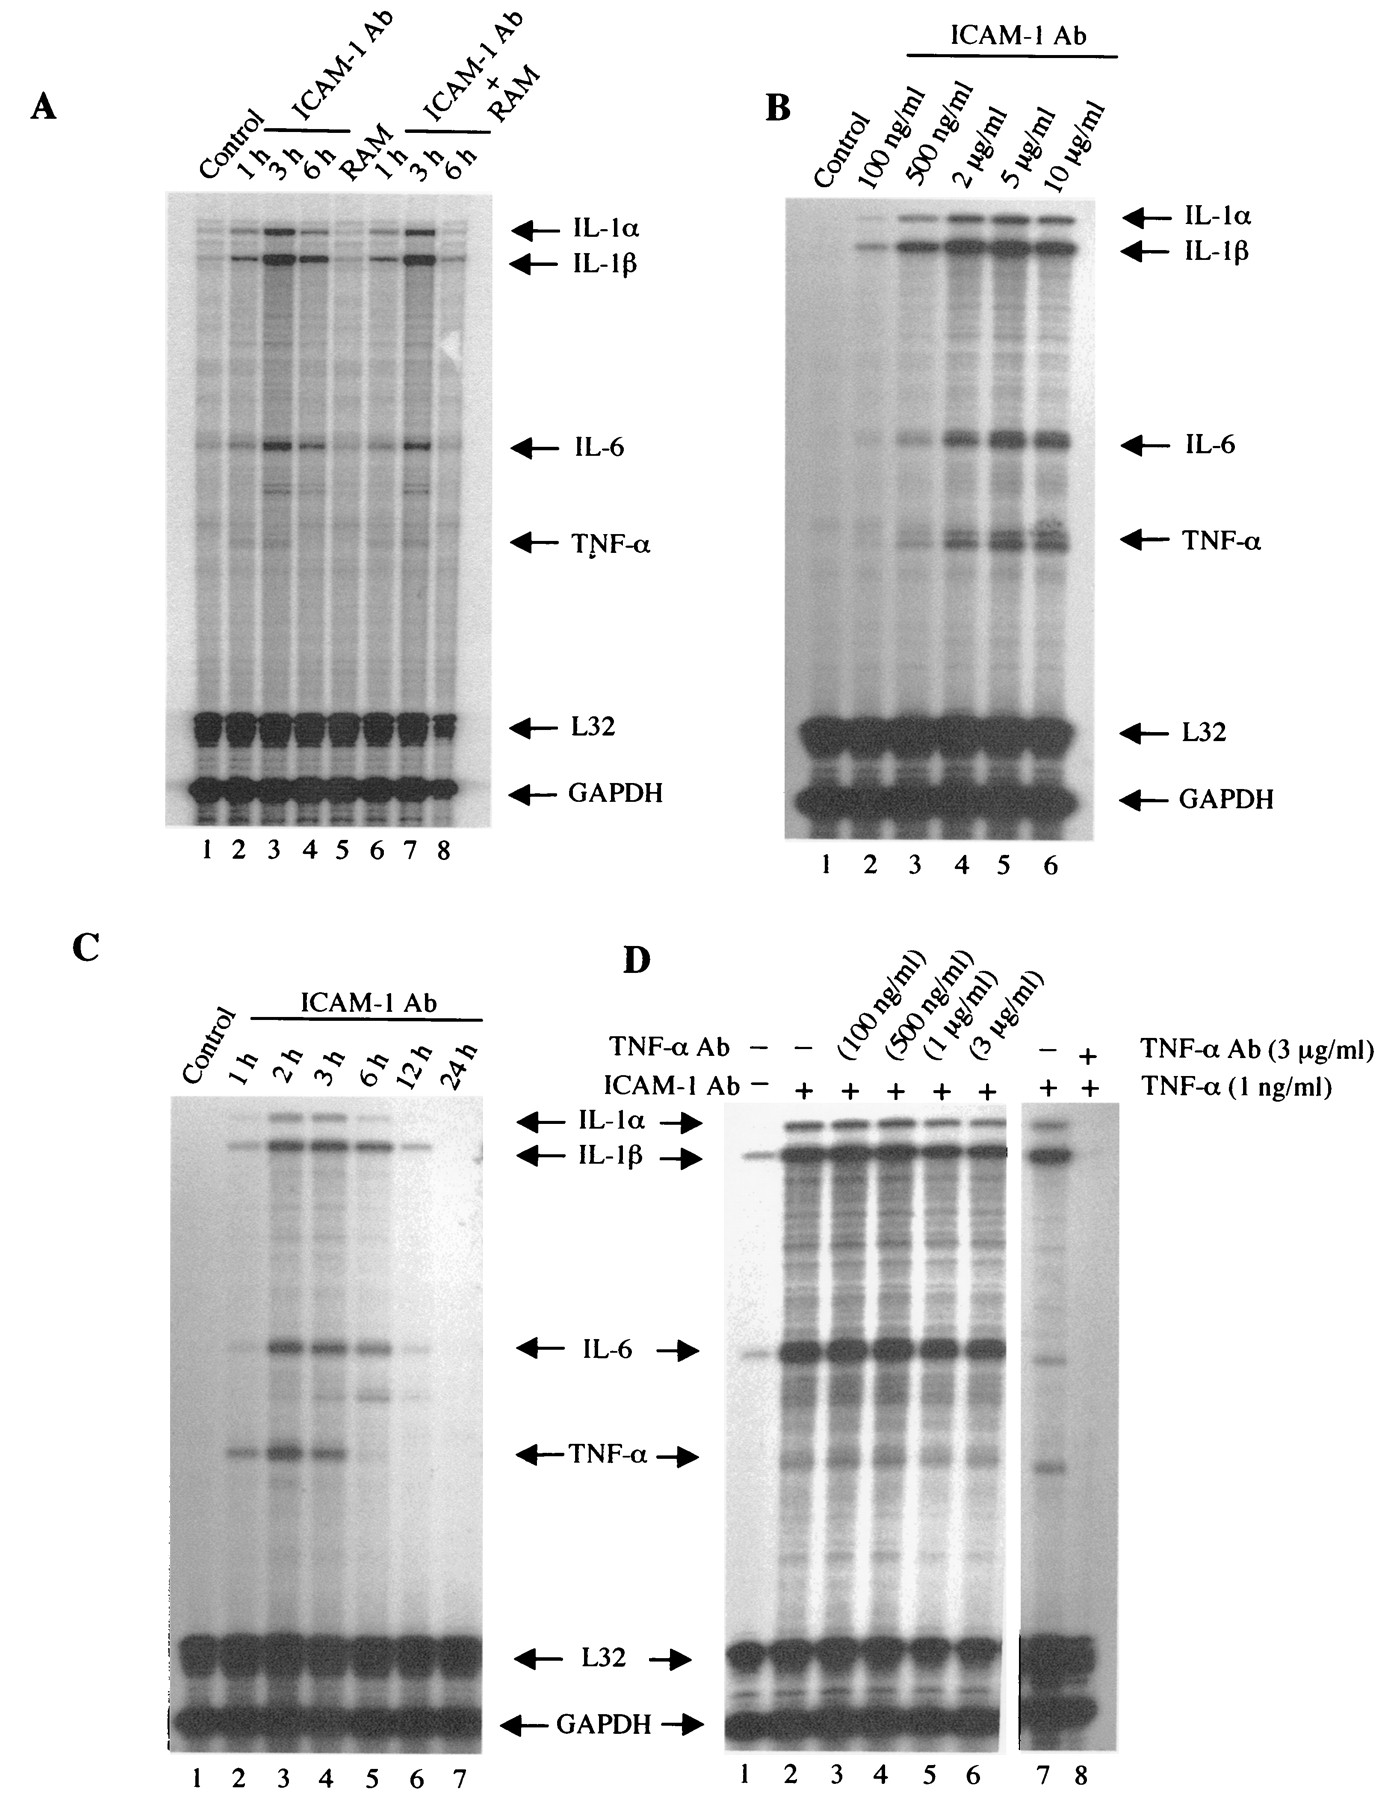 ICAM-1-Induced Expression of Proinflammatory Cytokines in